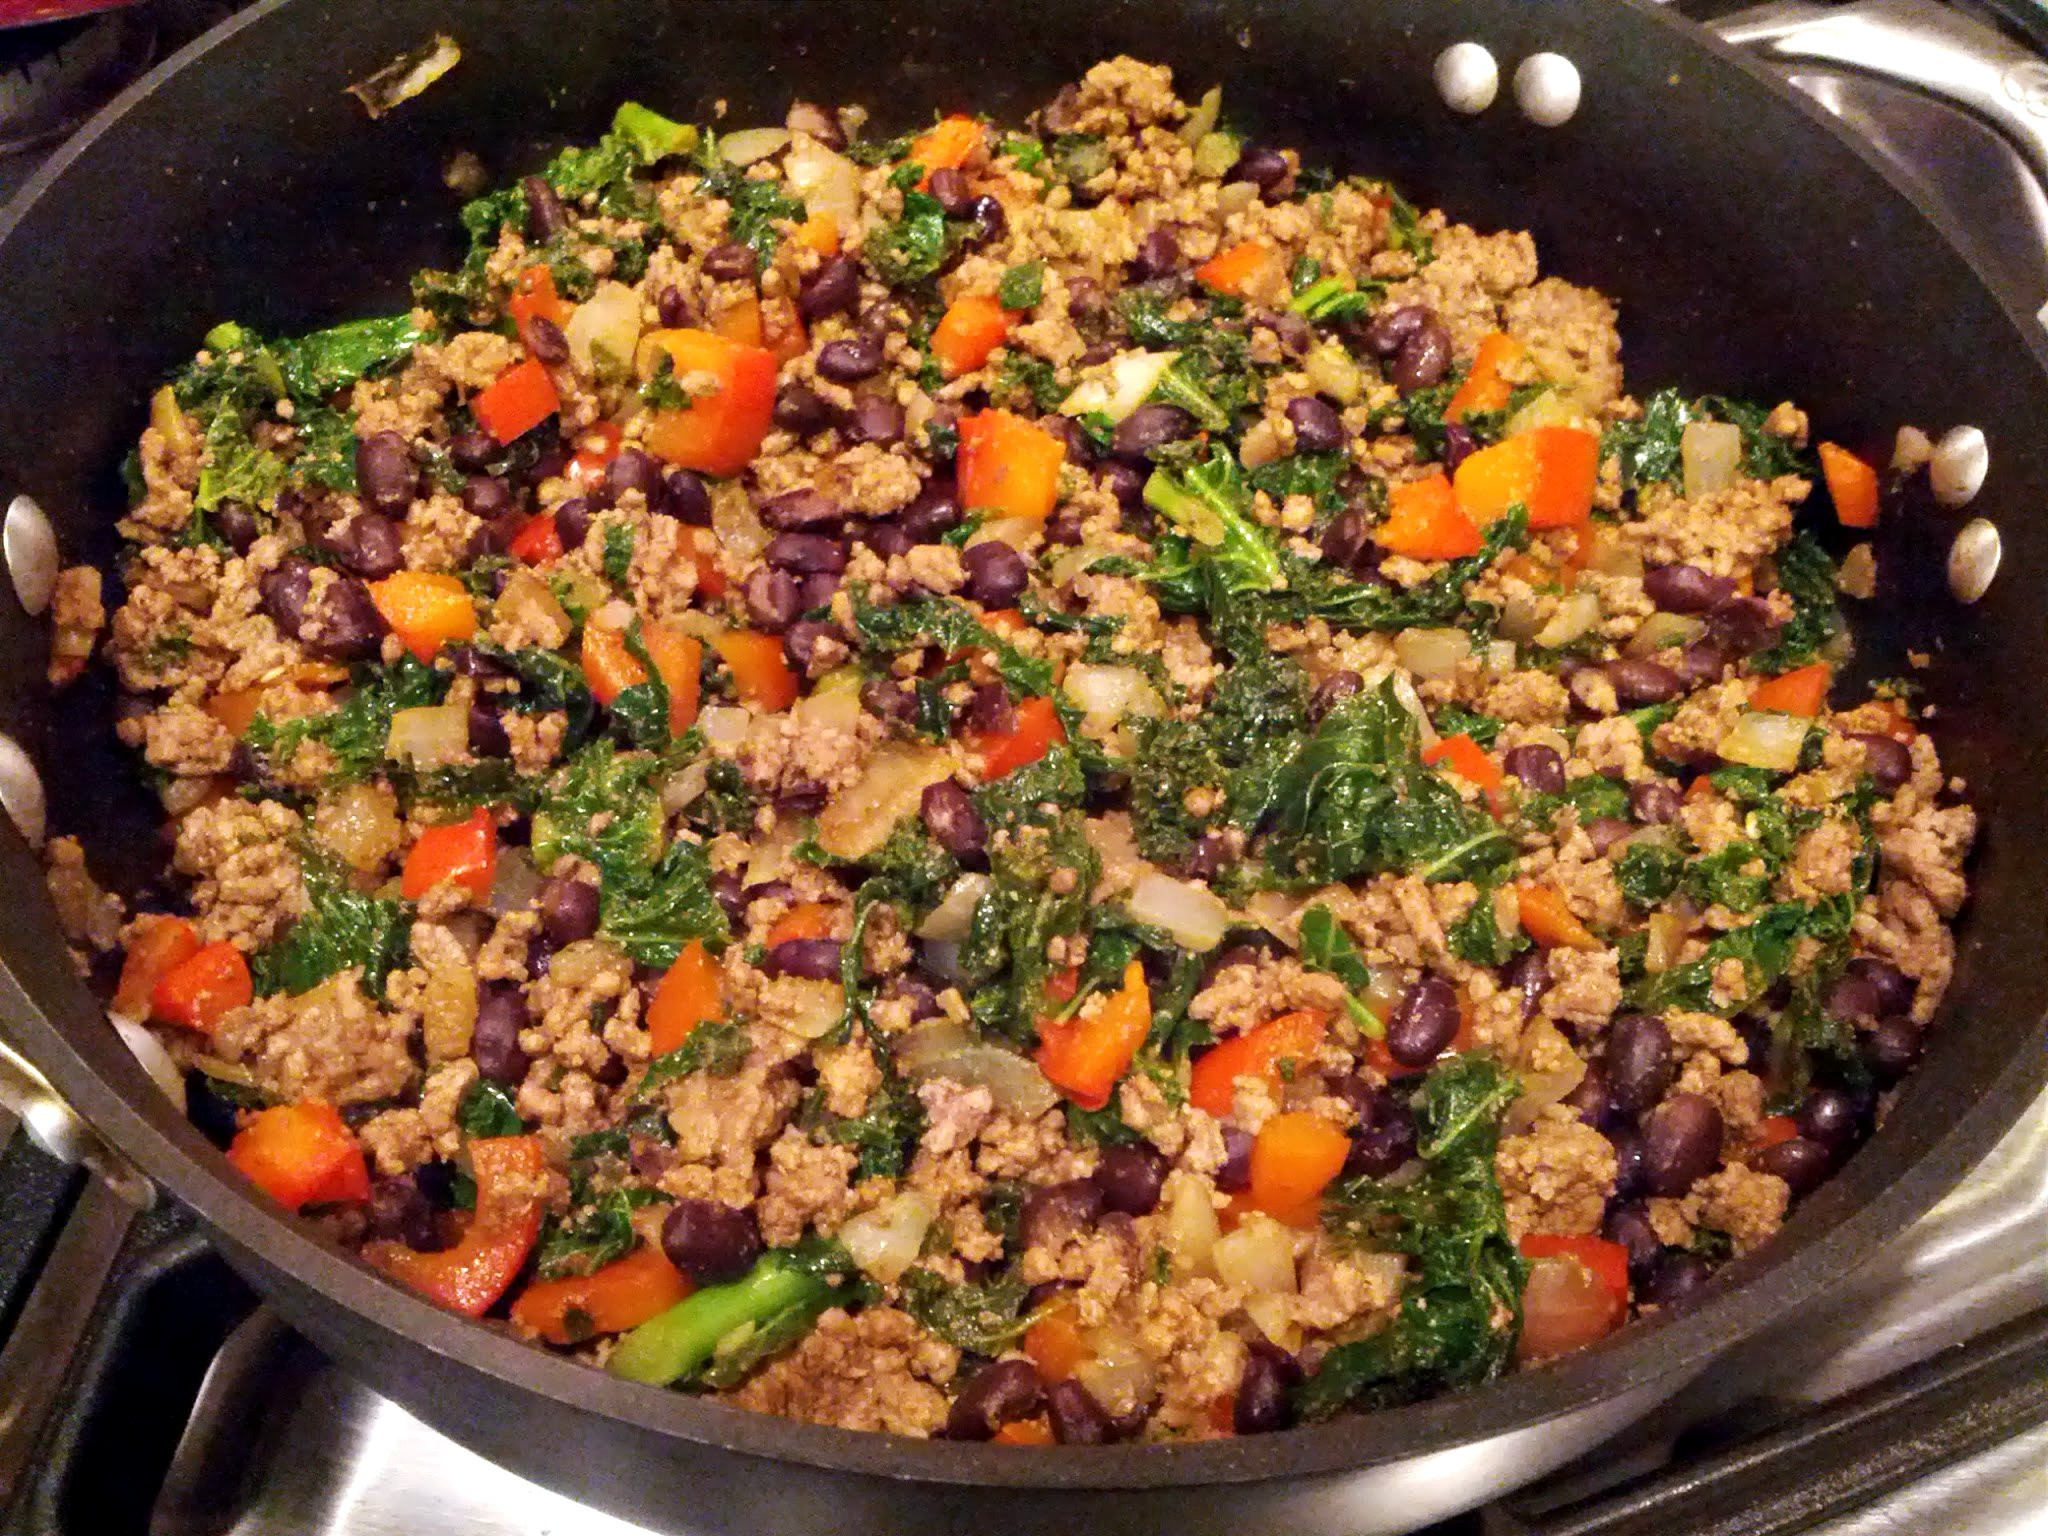 Kale Thanksgiving Recipes  Kale and Ground Beef Turkey Taco Filling